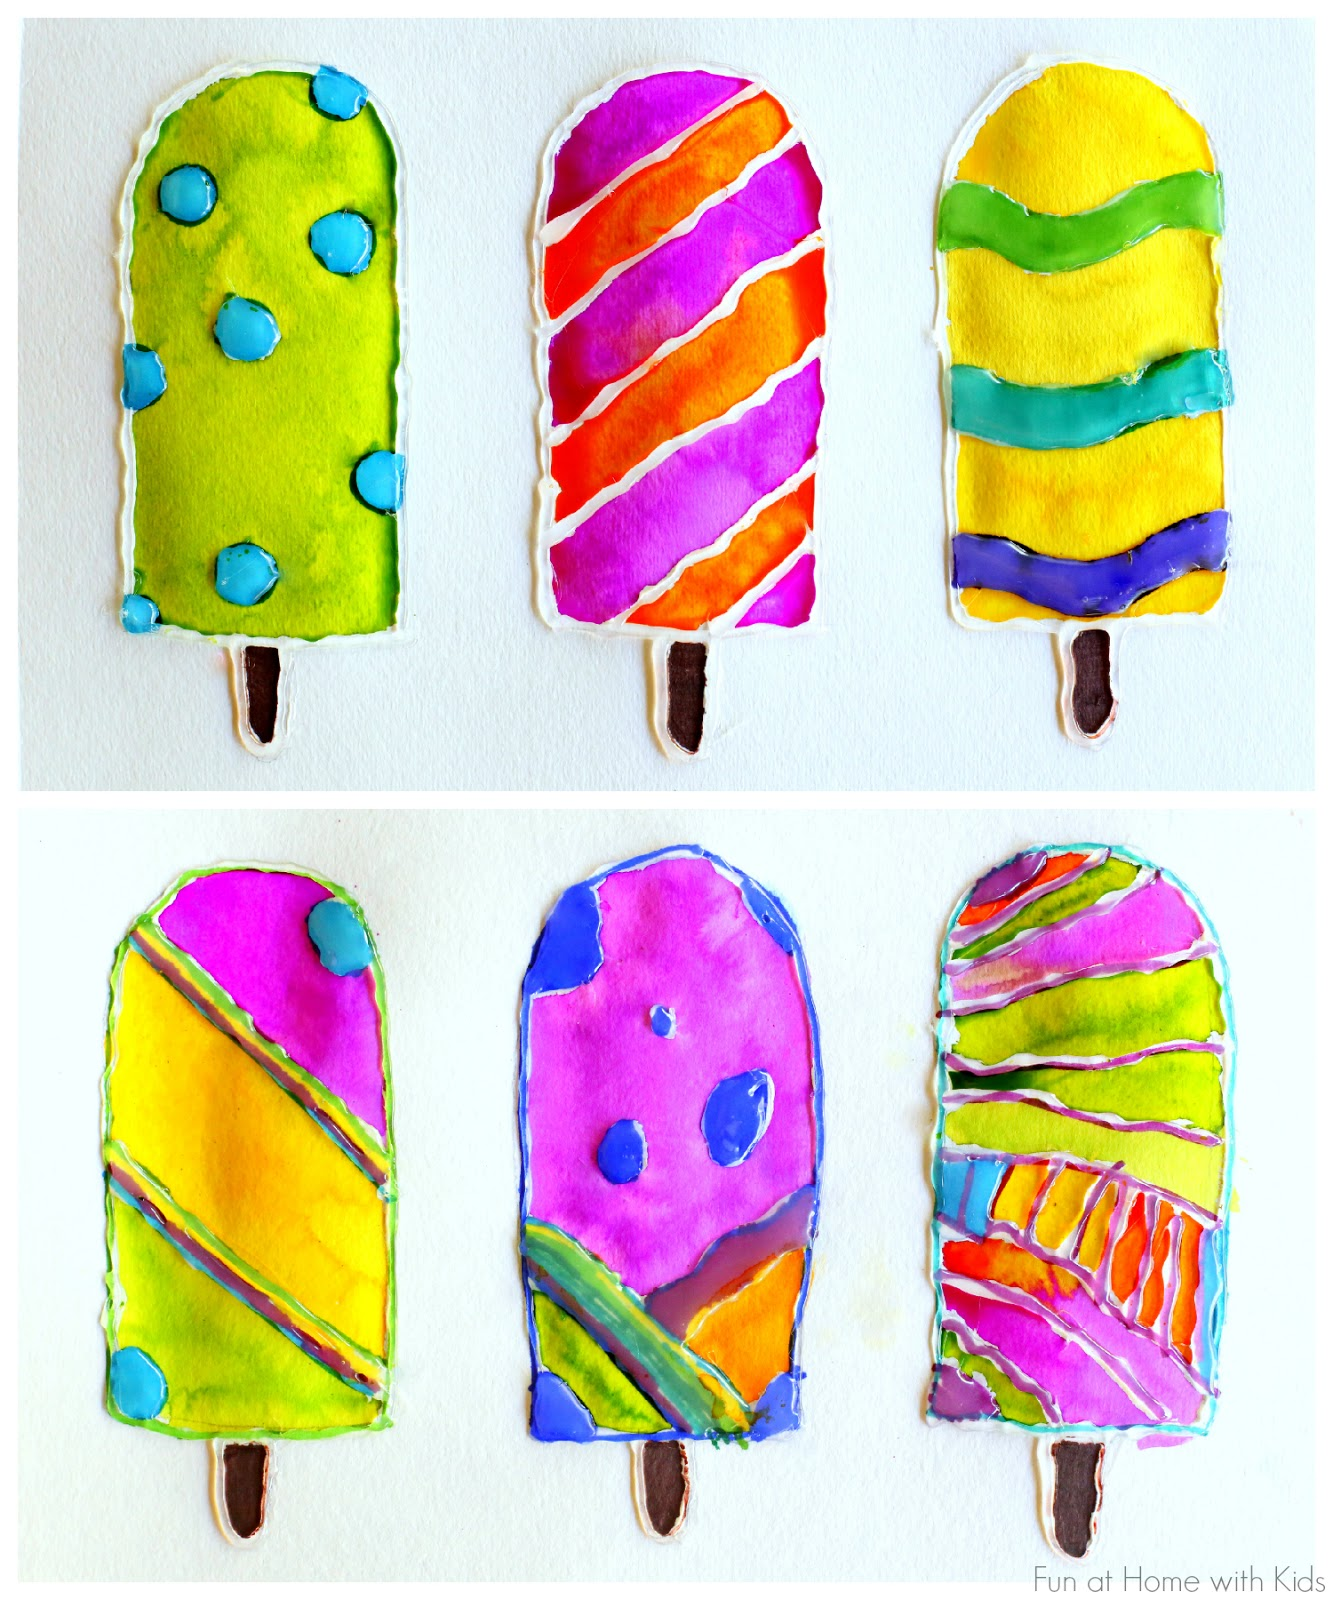 Popsicle Resist Art With Free Popsicle Template Fun At Home With